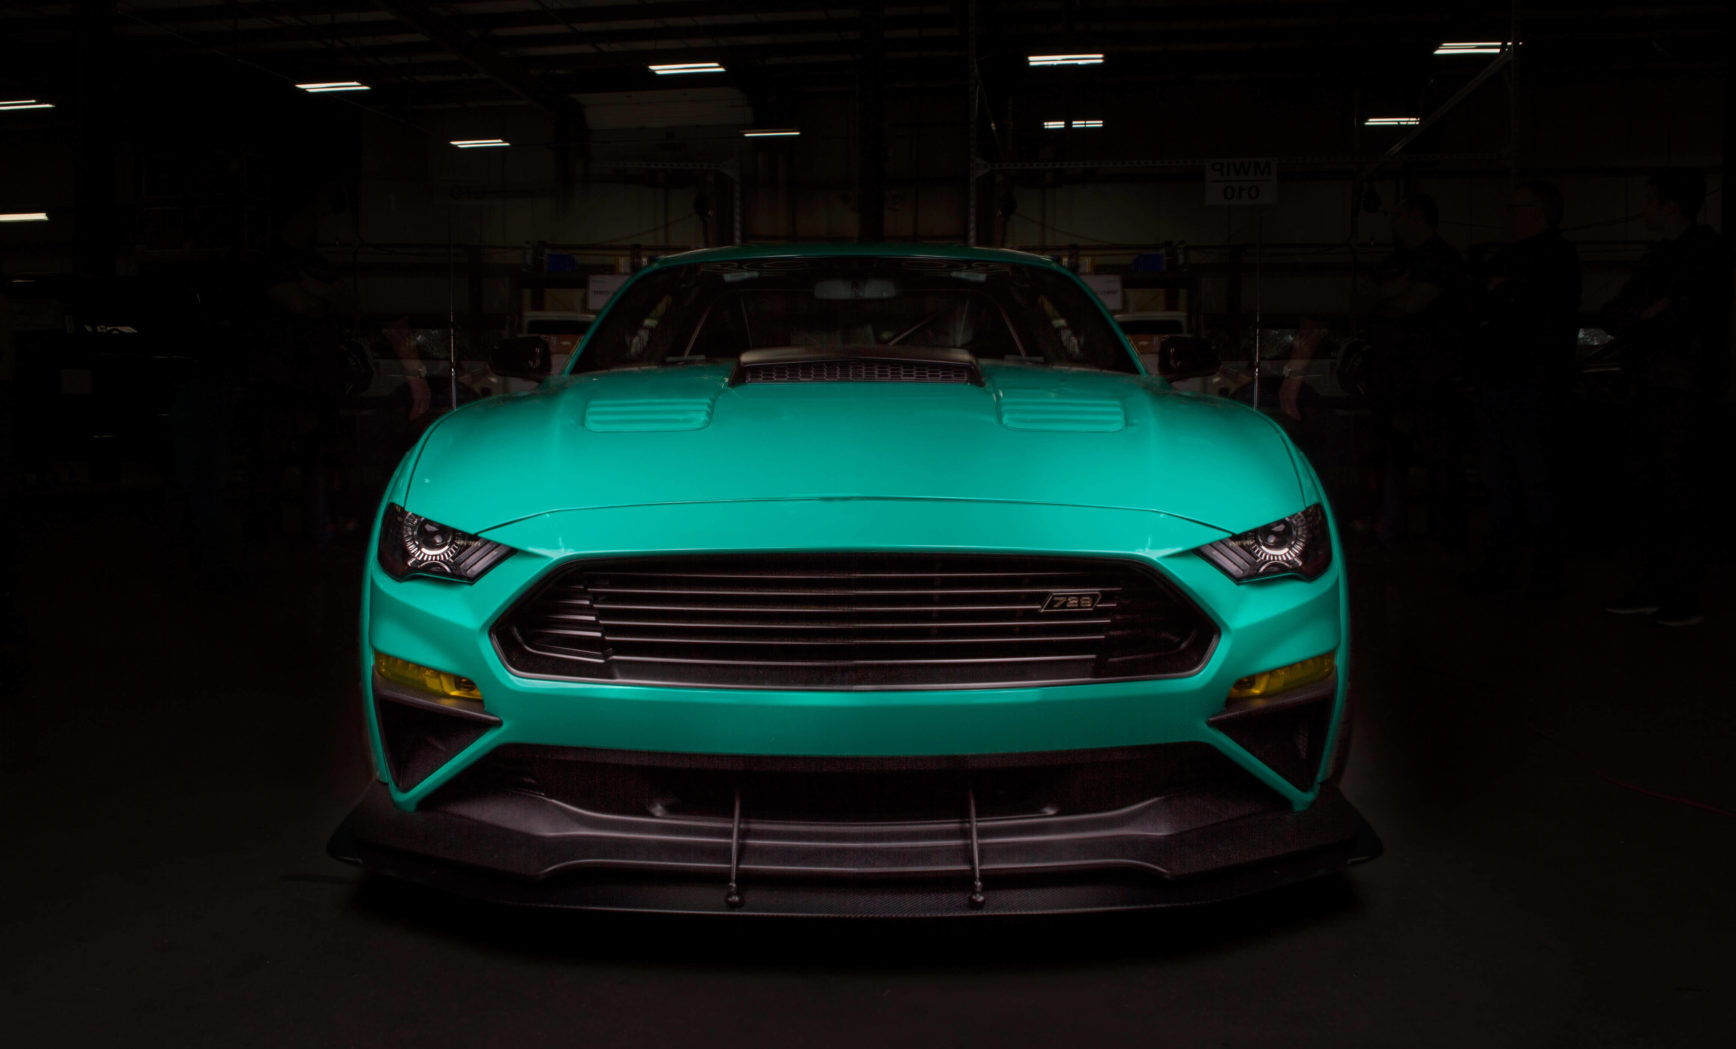 Mustang-ROUSH-729-front-face